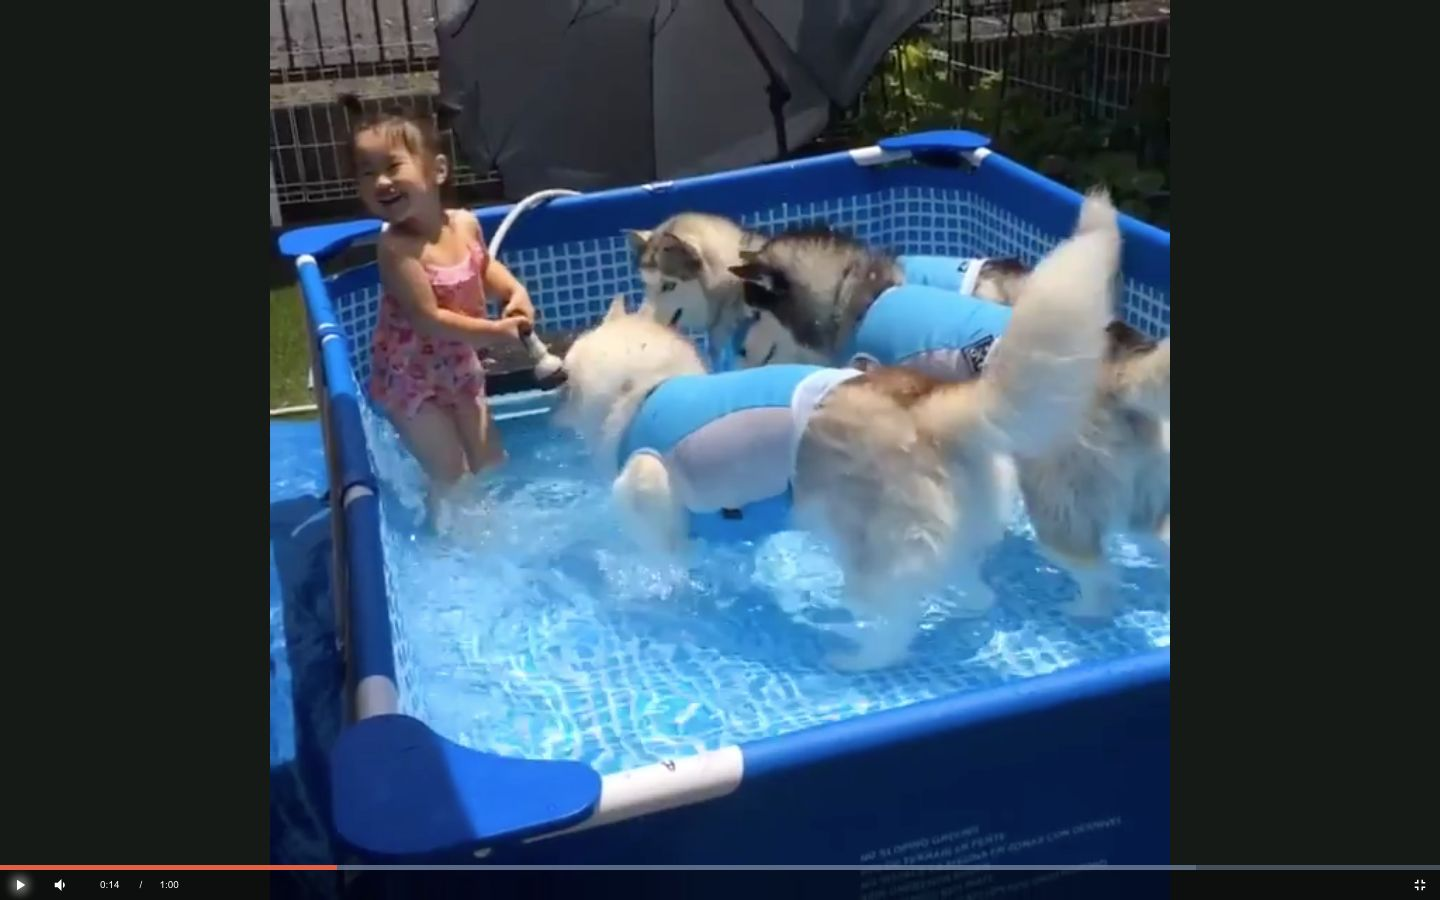 An adorable little girl appears to be having the time of her life while playing with three huskies in a swimming pool.